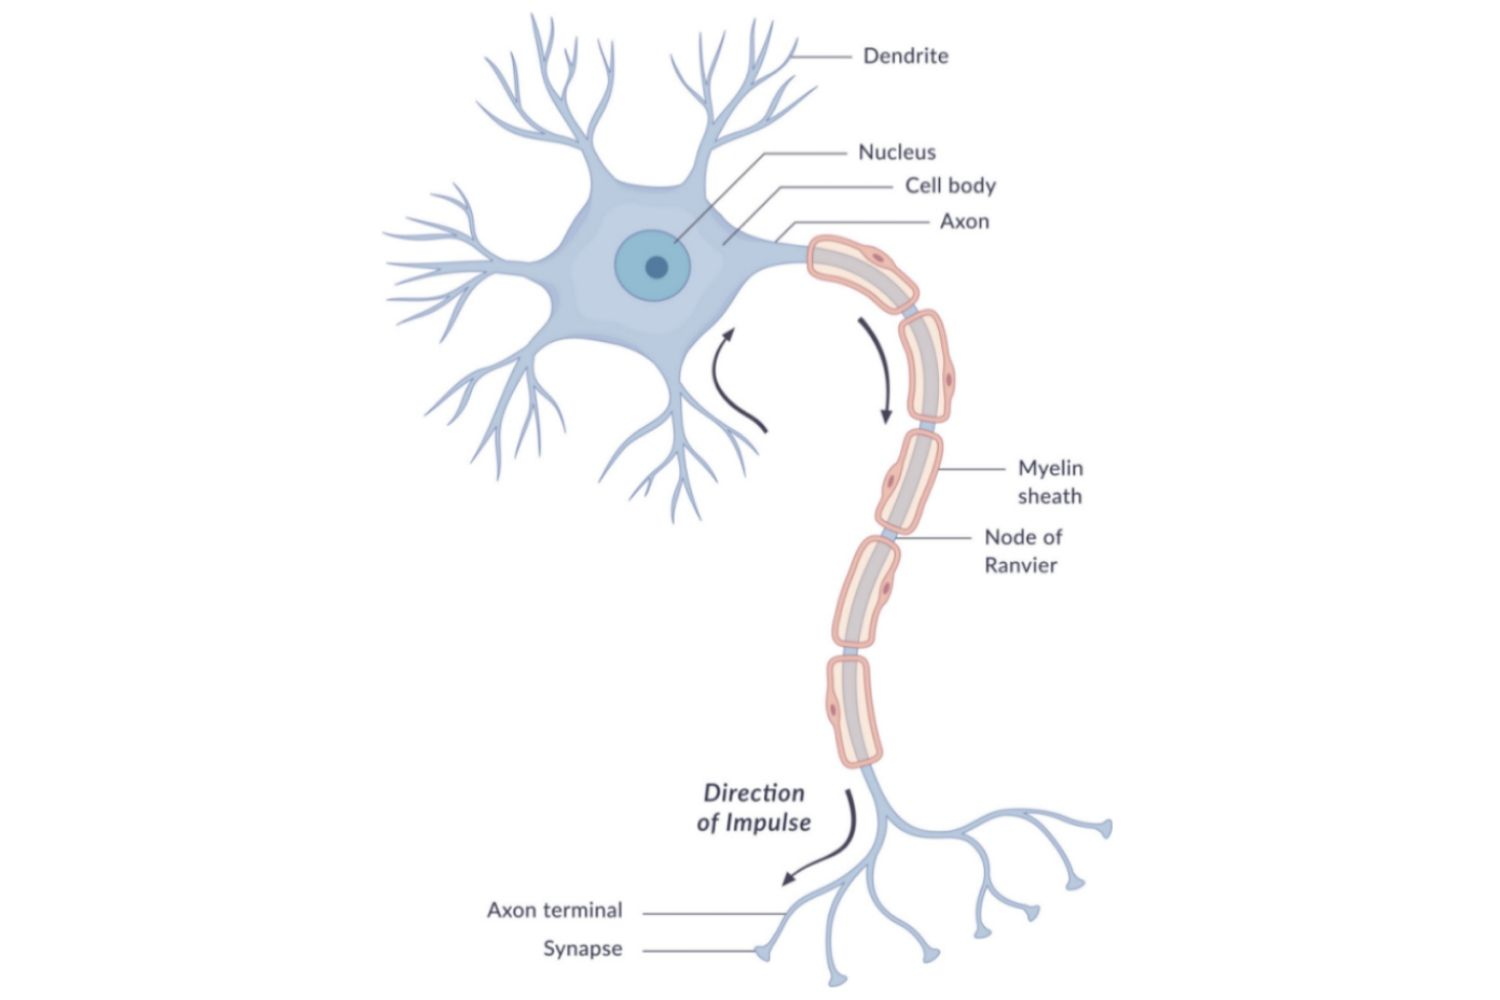 human biology: the anatomy of neurons